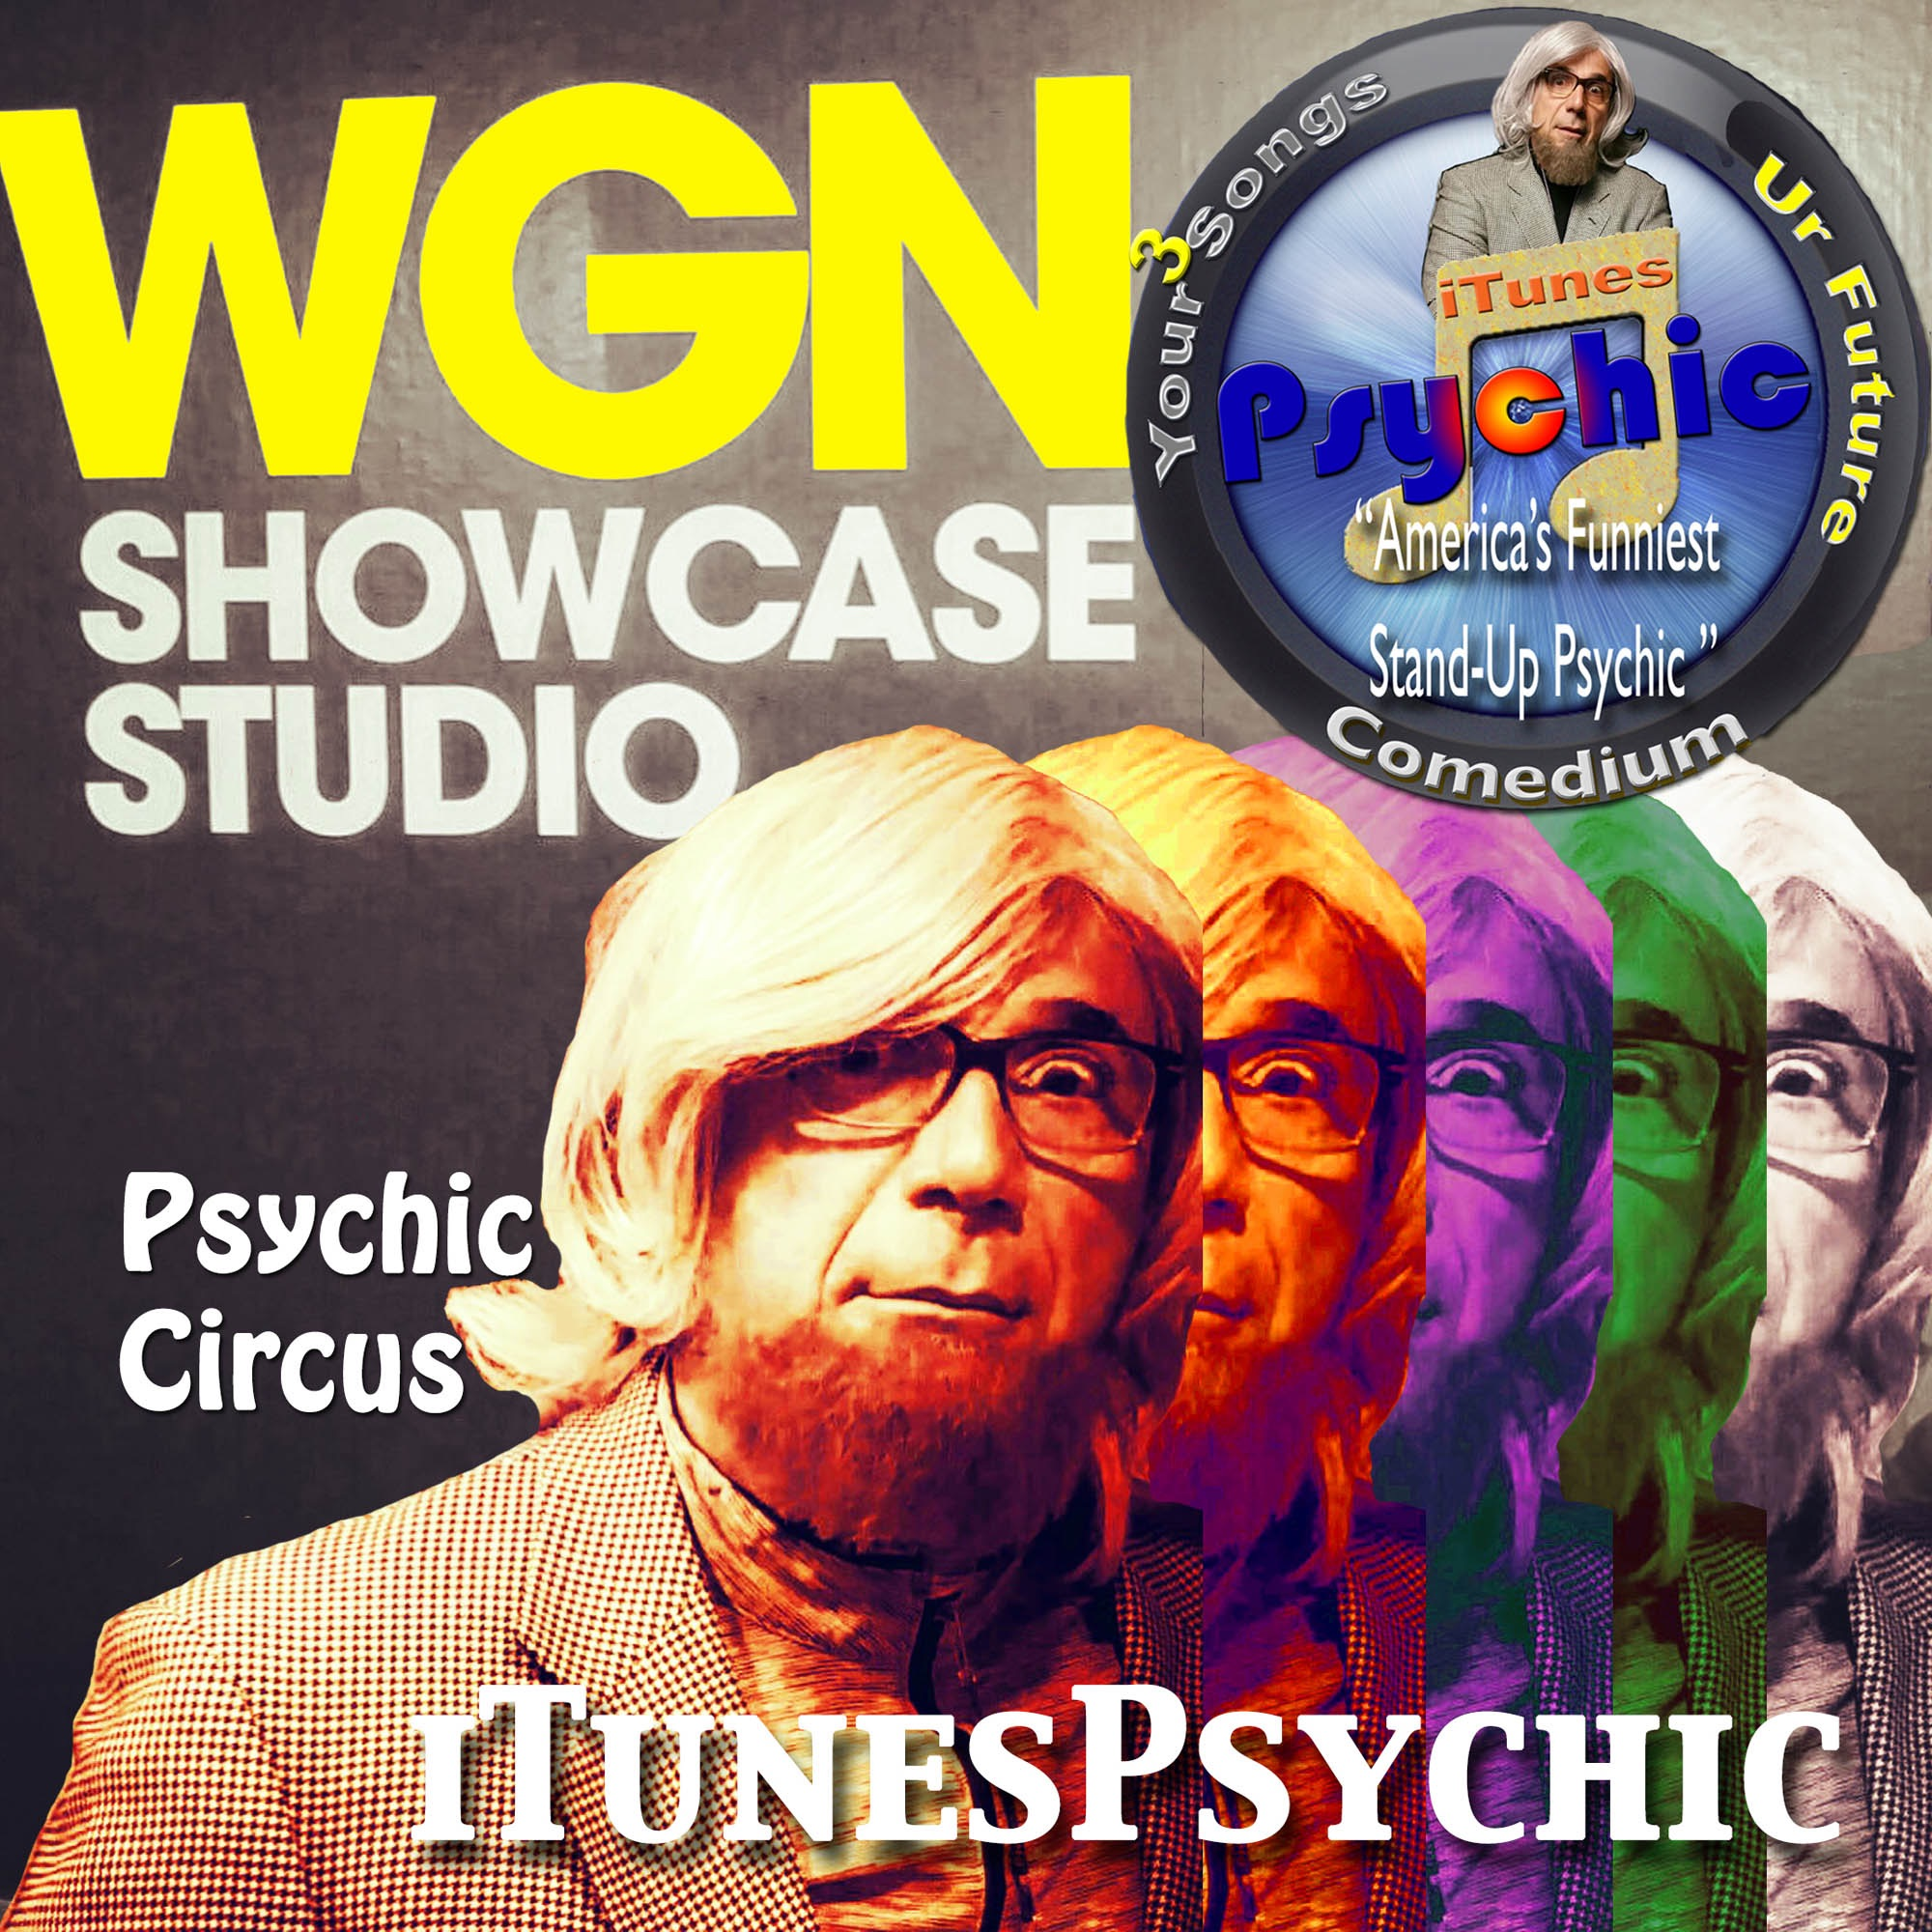 Psychic Circus: 2017-09-22 Diane's AFTERNOON DELIGHT, Mary & Elvis, Will sings about fruit.